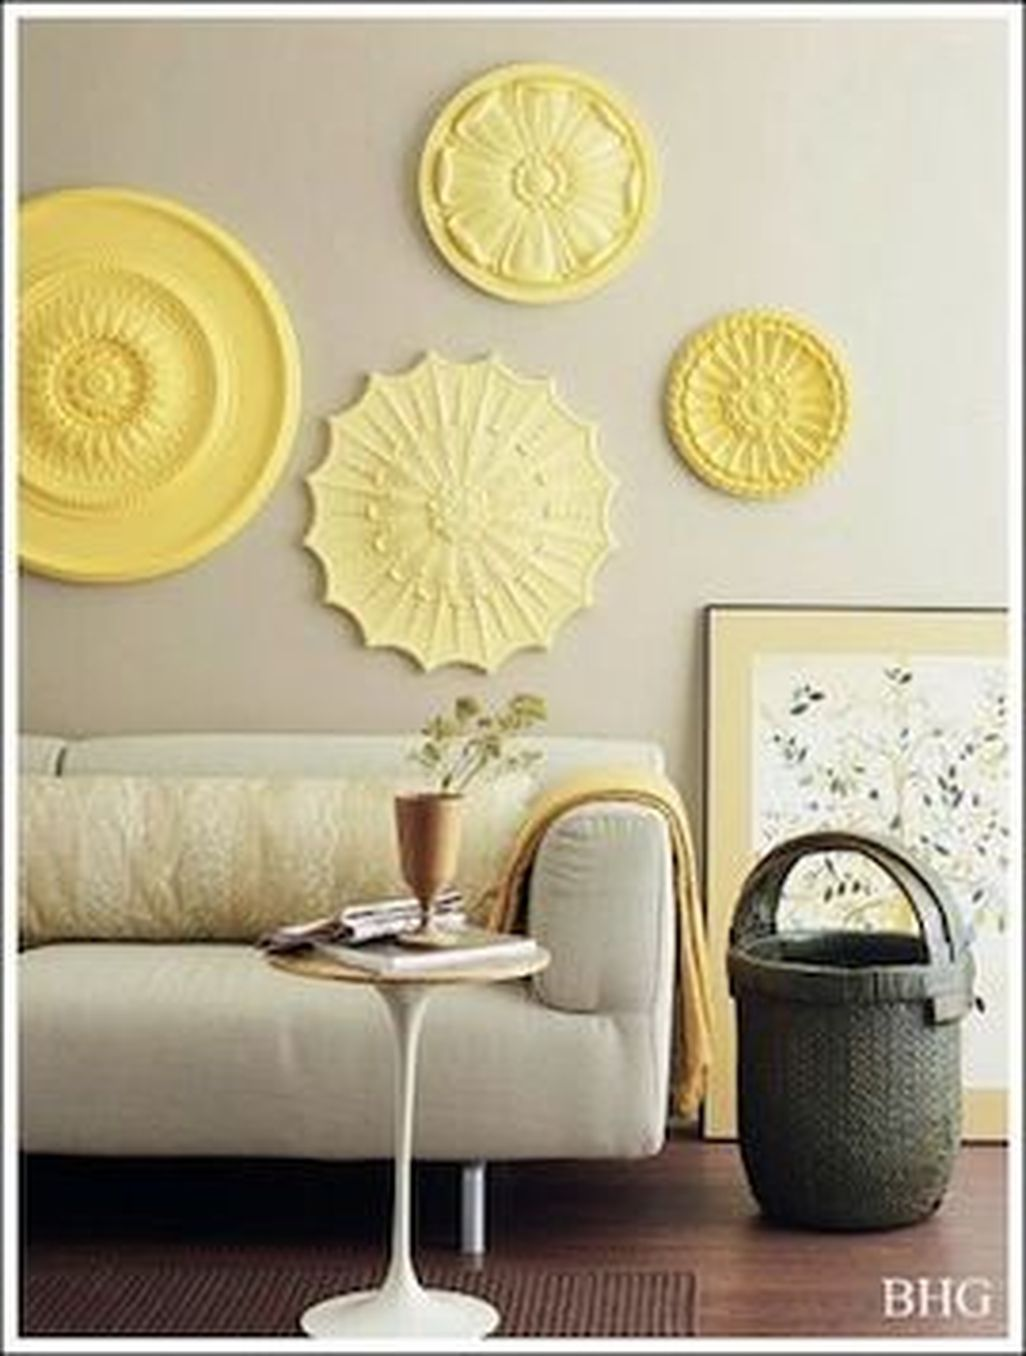 44 Gorgeous Simple Diy Wall Decorating Ideas On A Budget | Pinterest ...